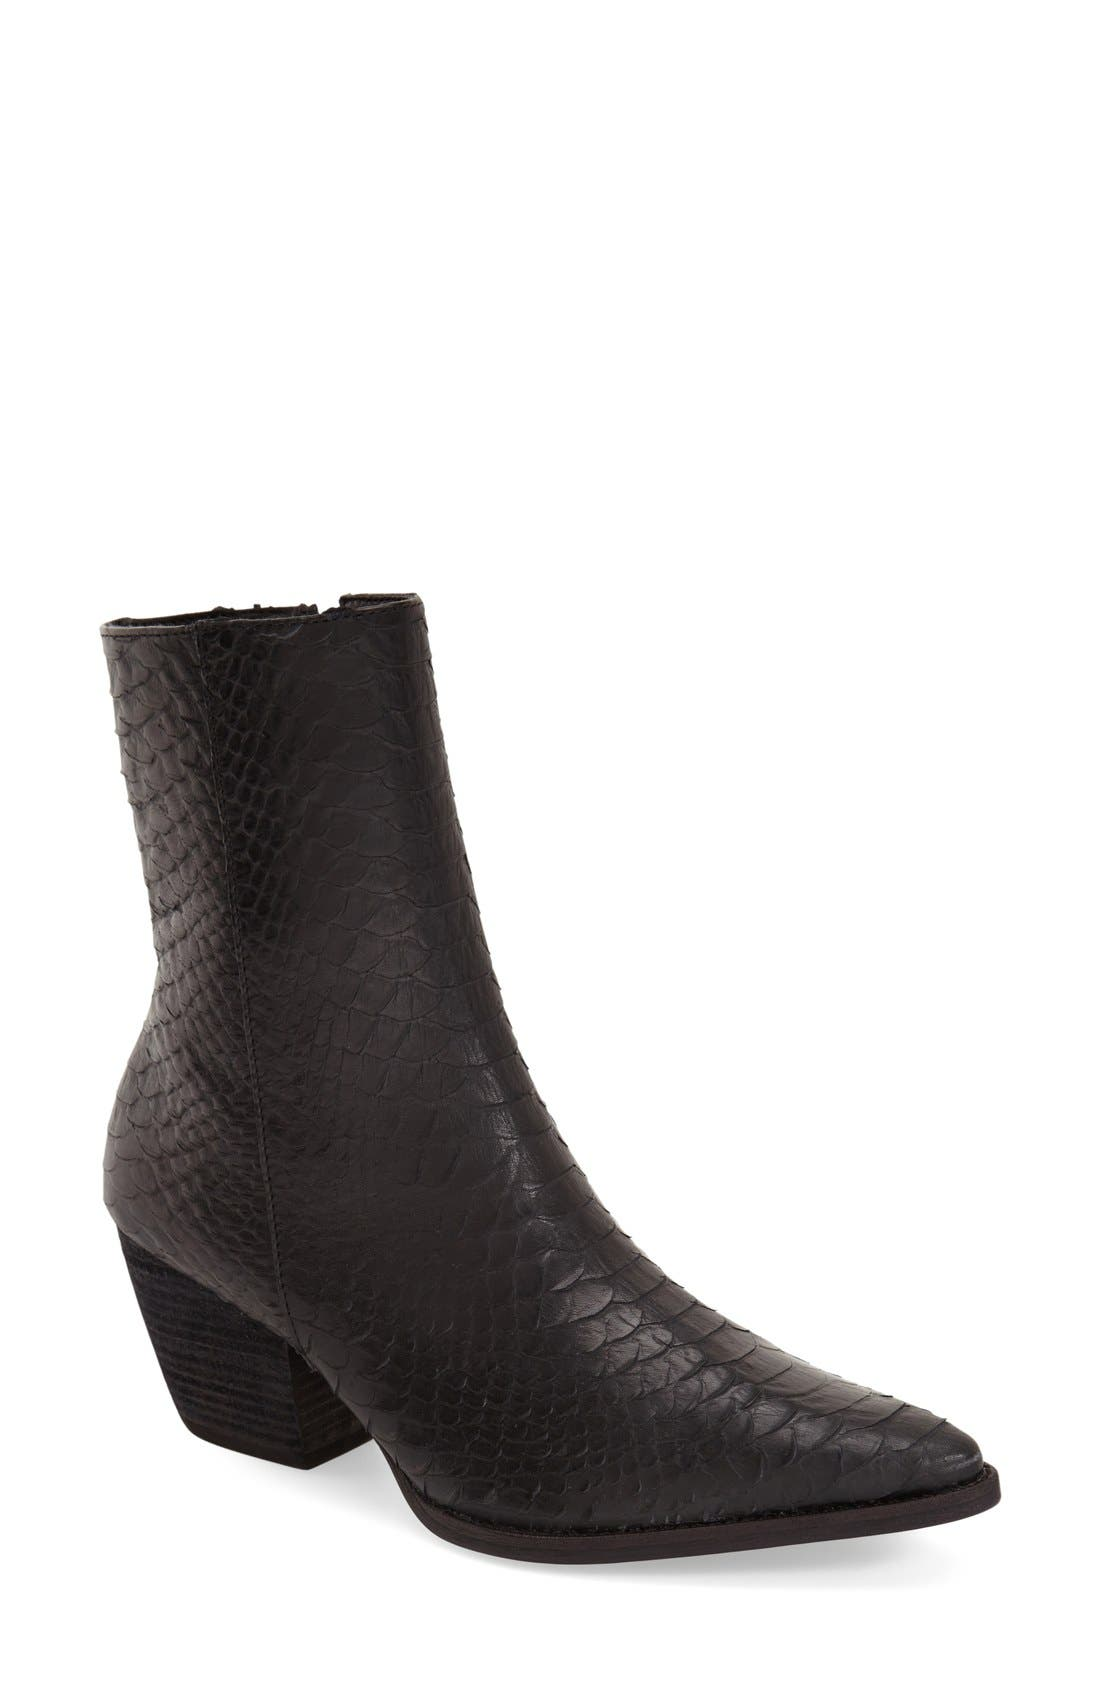 MATISSE Caty Western Pointy Toe Bootie in Black Croc Embossed Leather